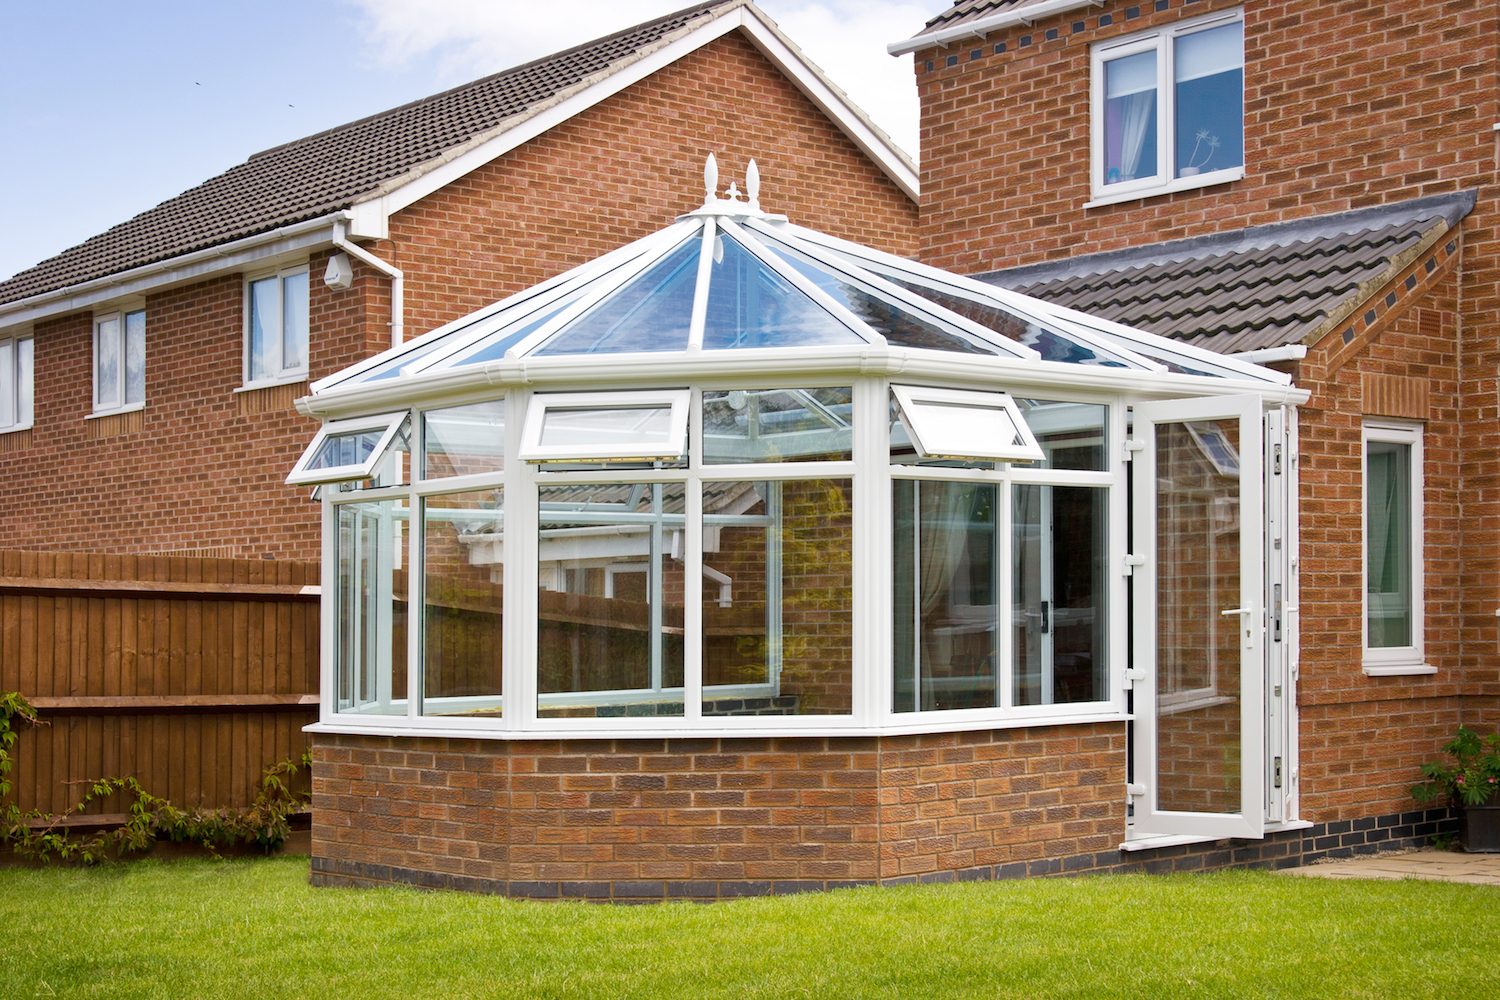 White-framed glass conservatory attached to house